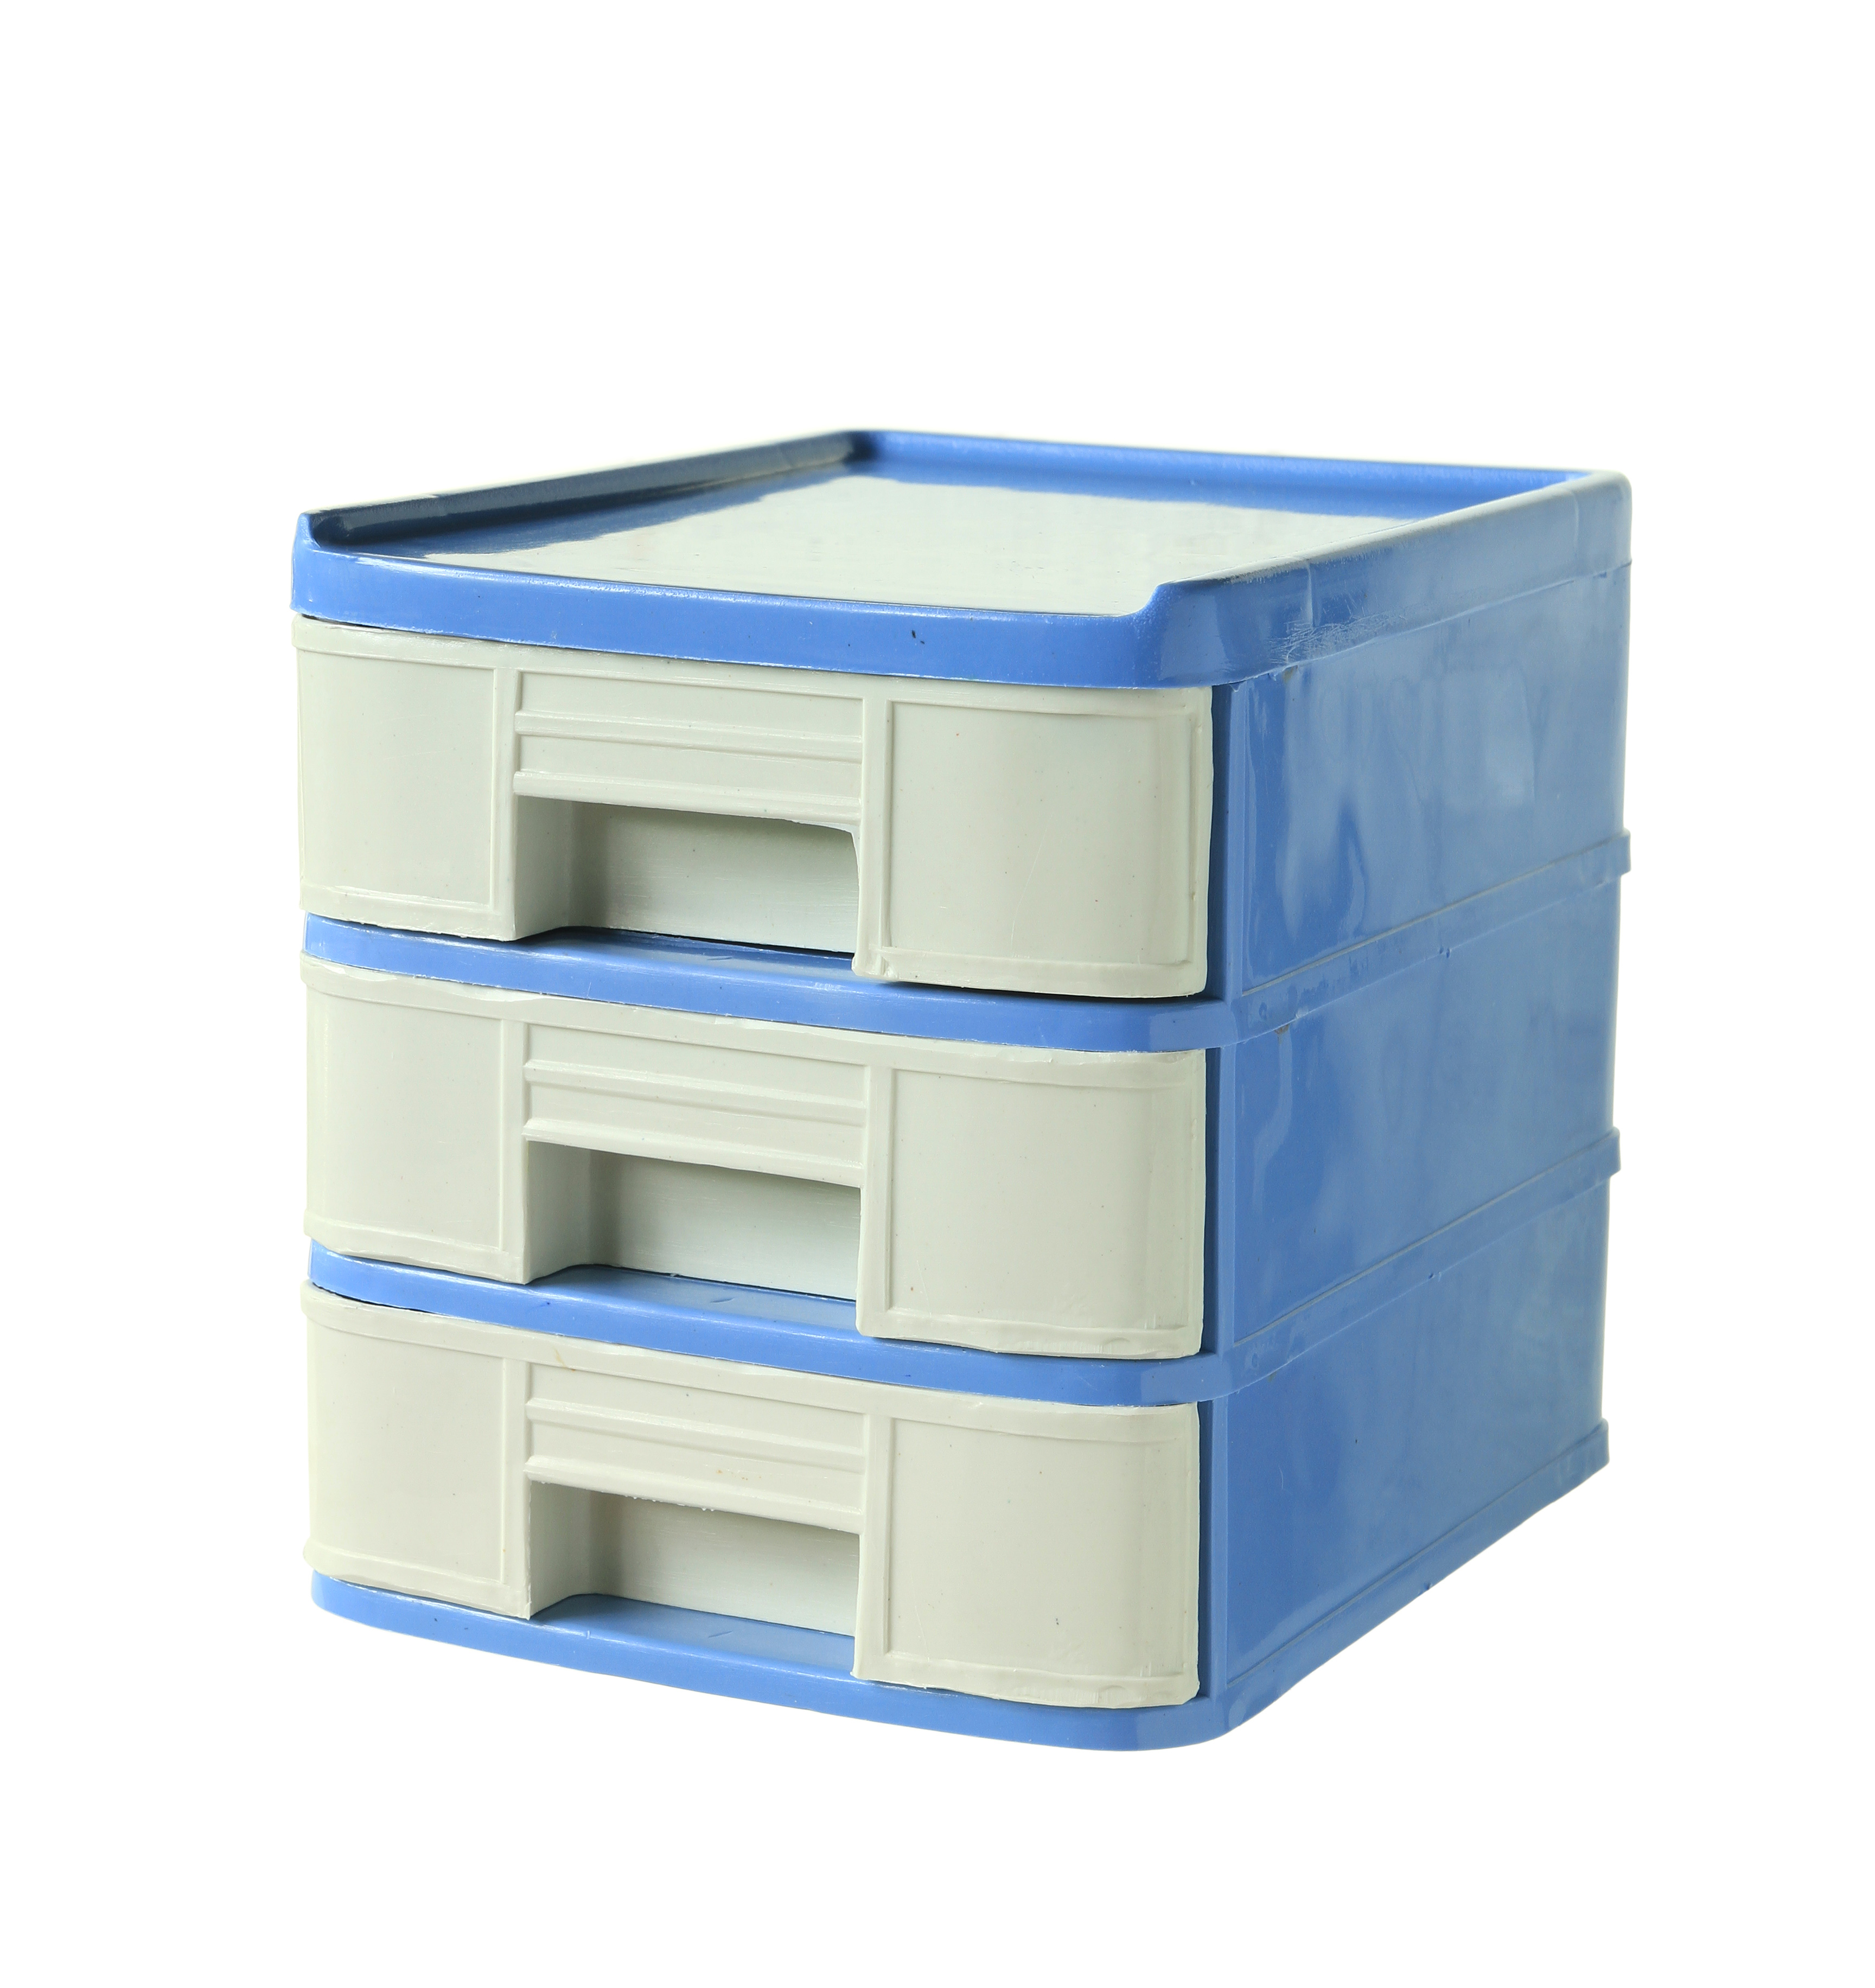 Plastic drawers can be filled with napkins, plastic cutlery, etc.